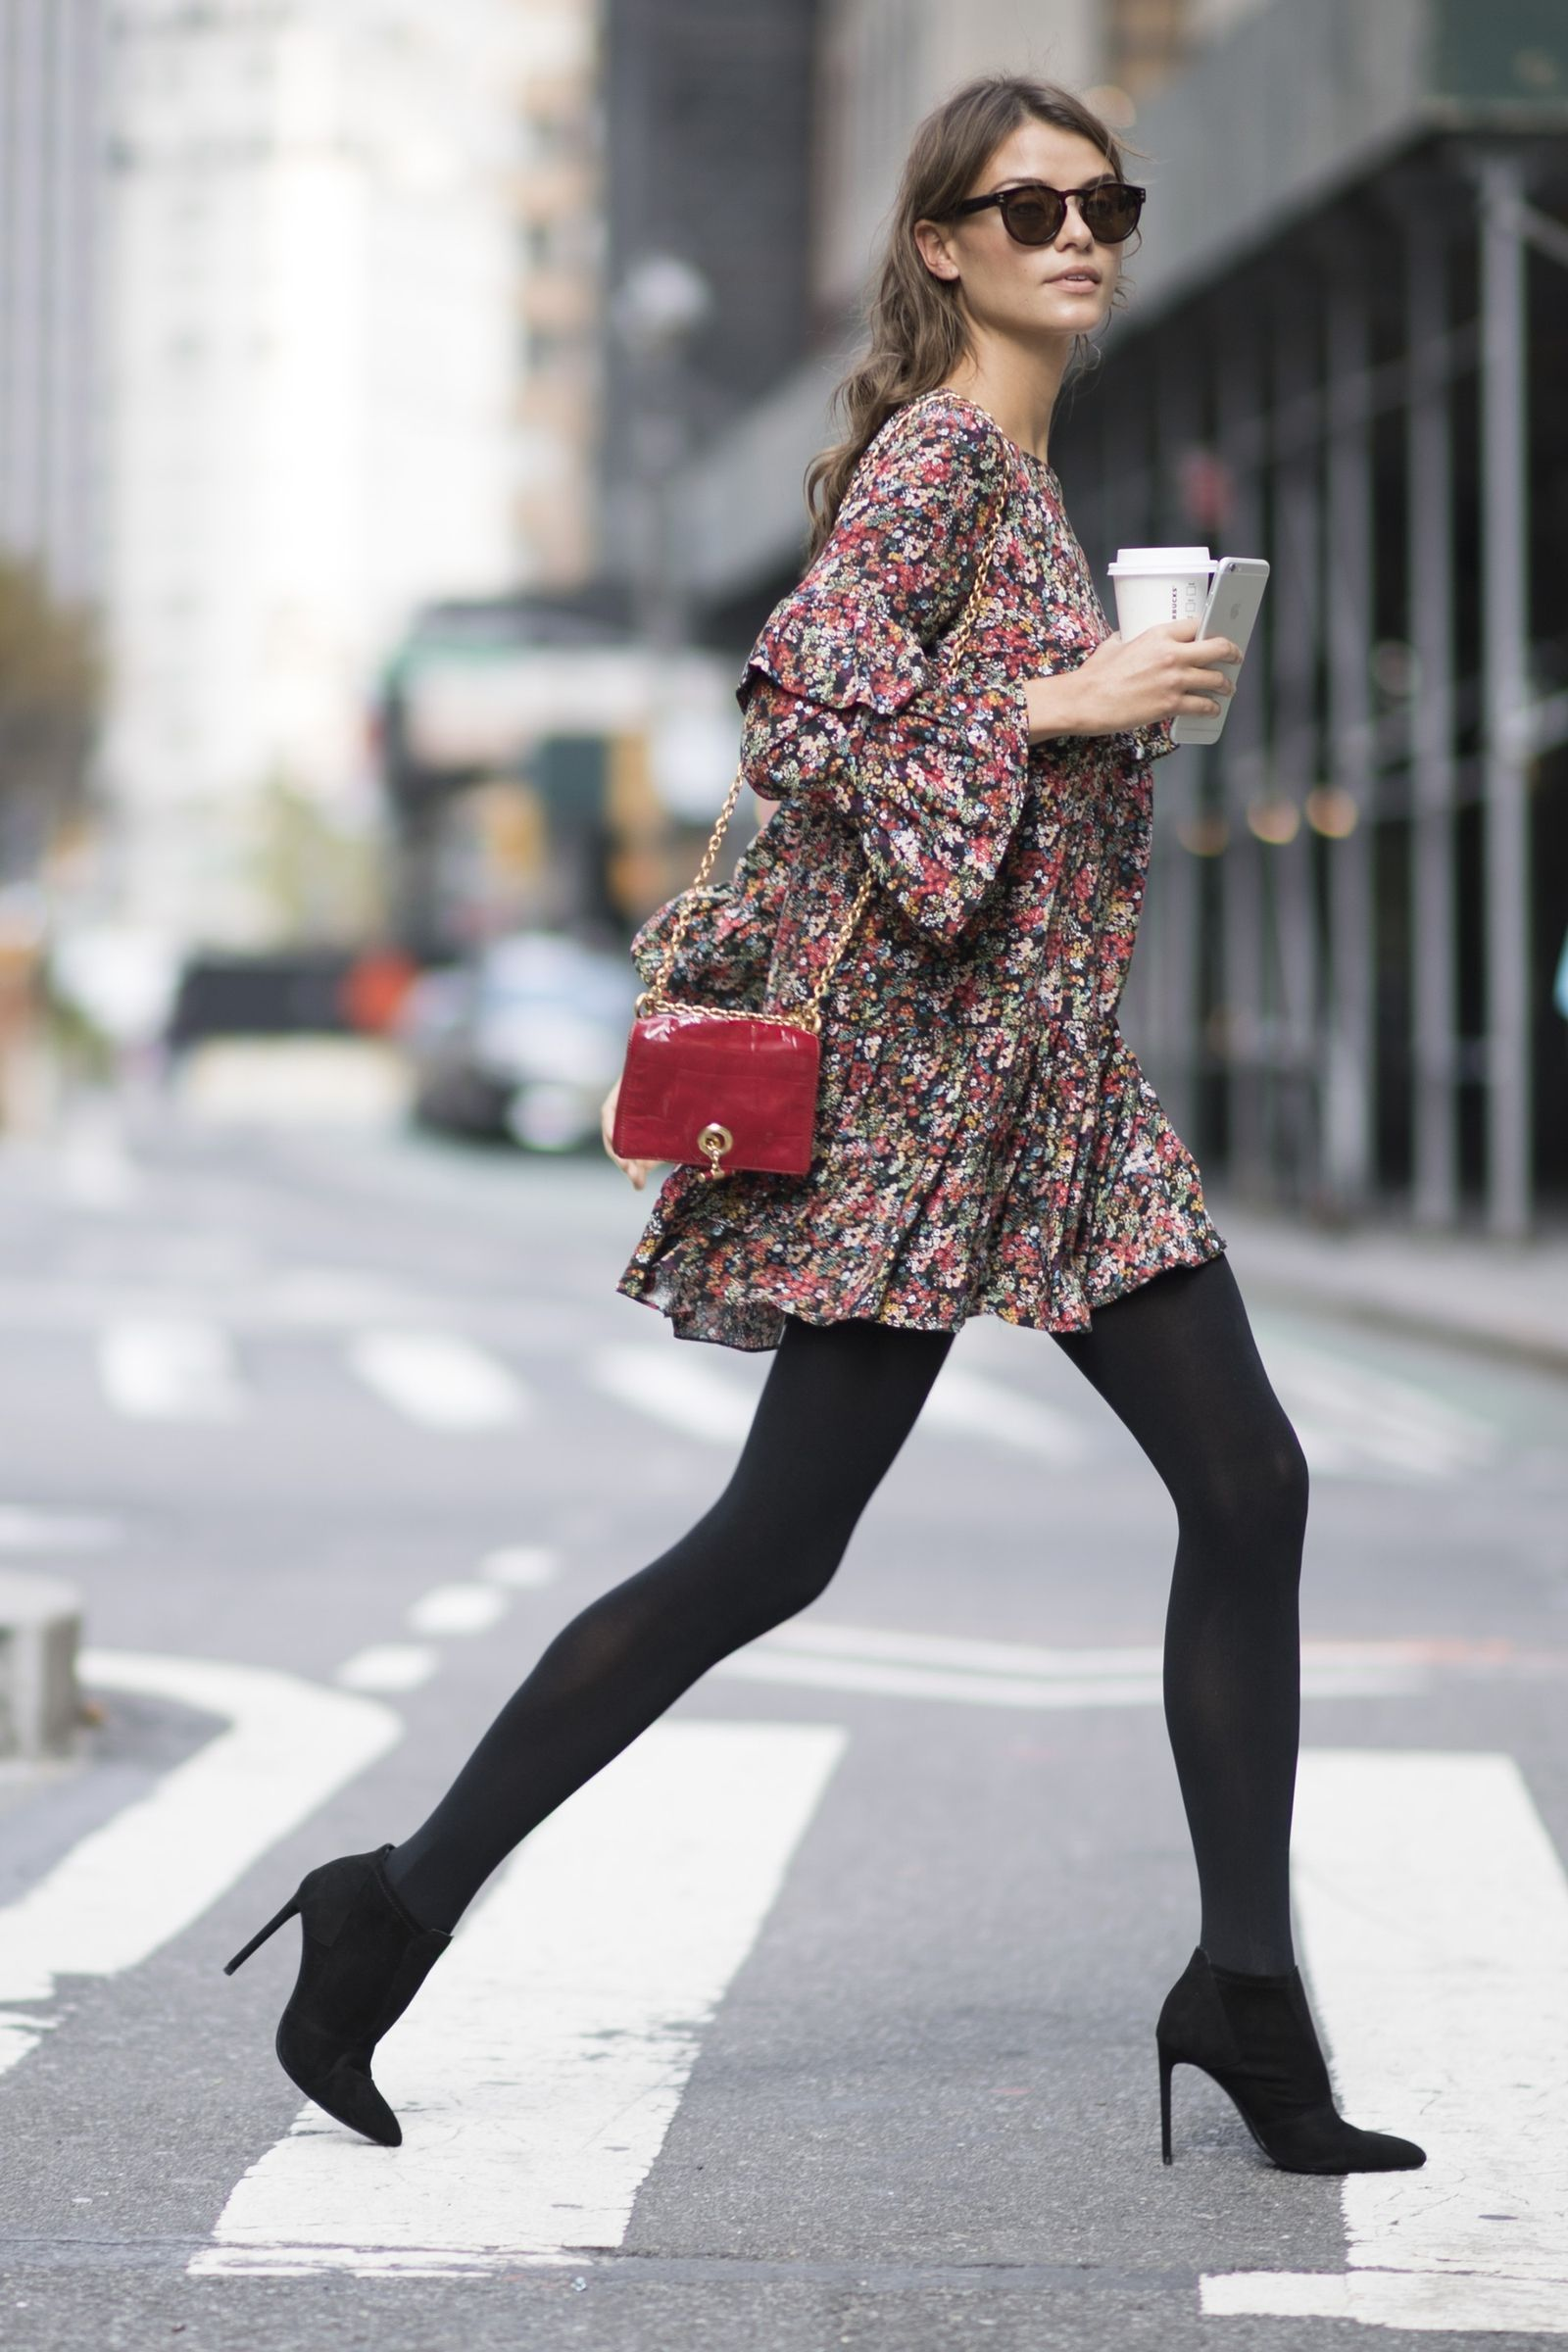 Here S What Victoria S Secret Models Wear To Work Fashion Fashion Clothes Women Black Tights Outfit [ 2400 x 1600 Pixel ]